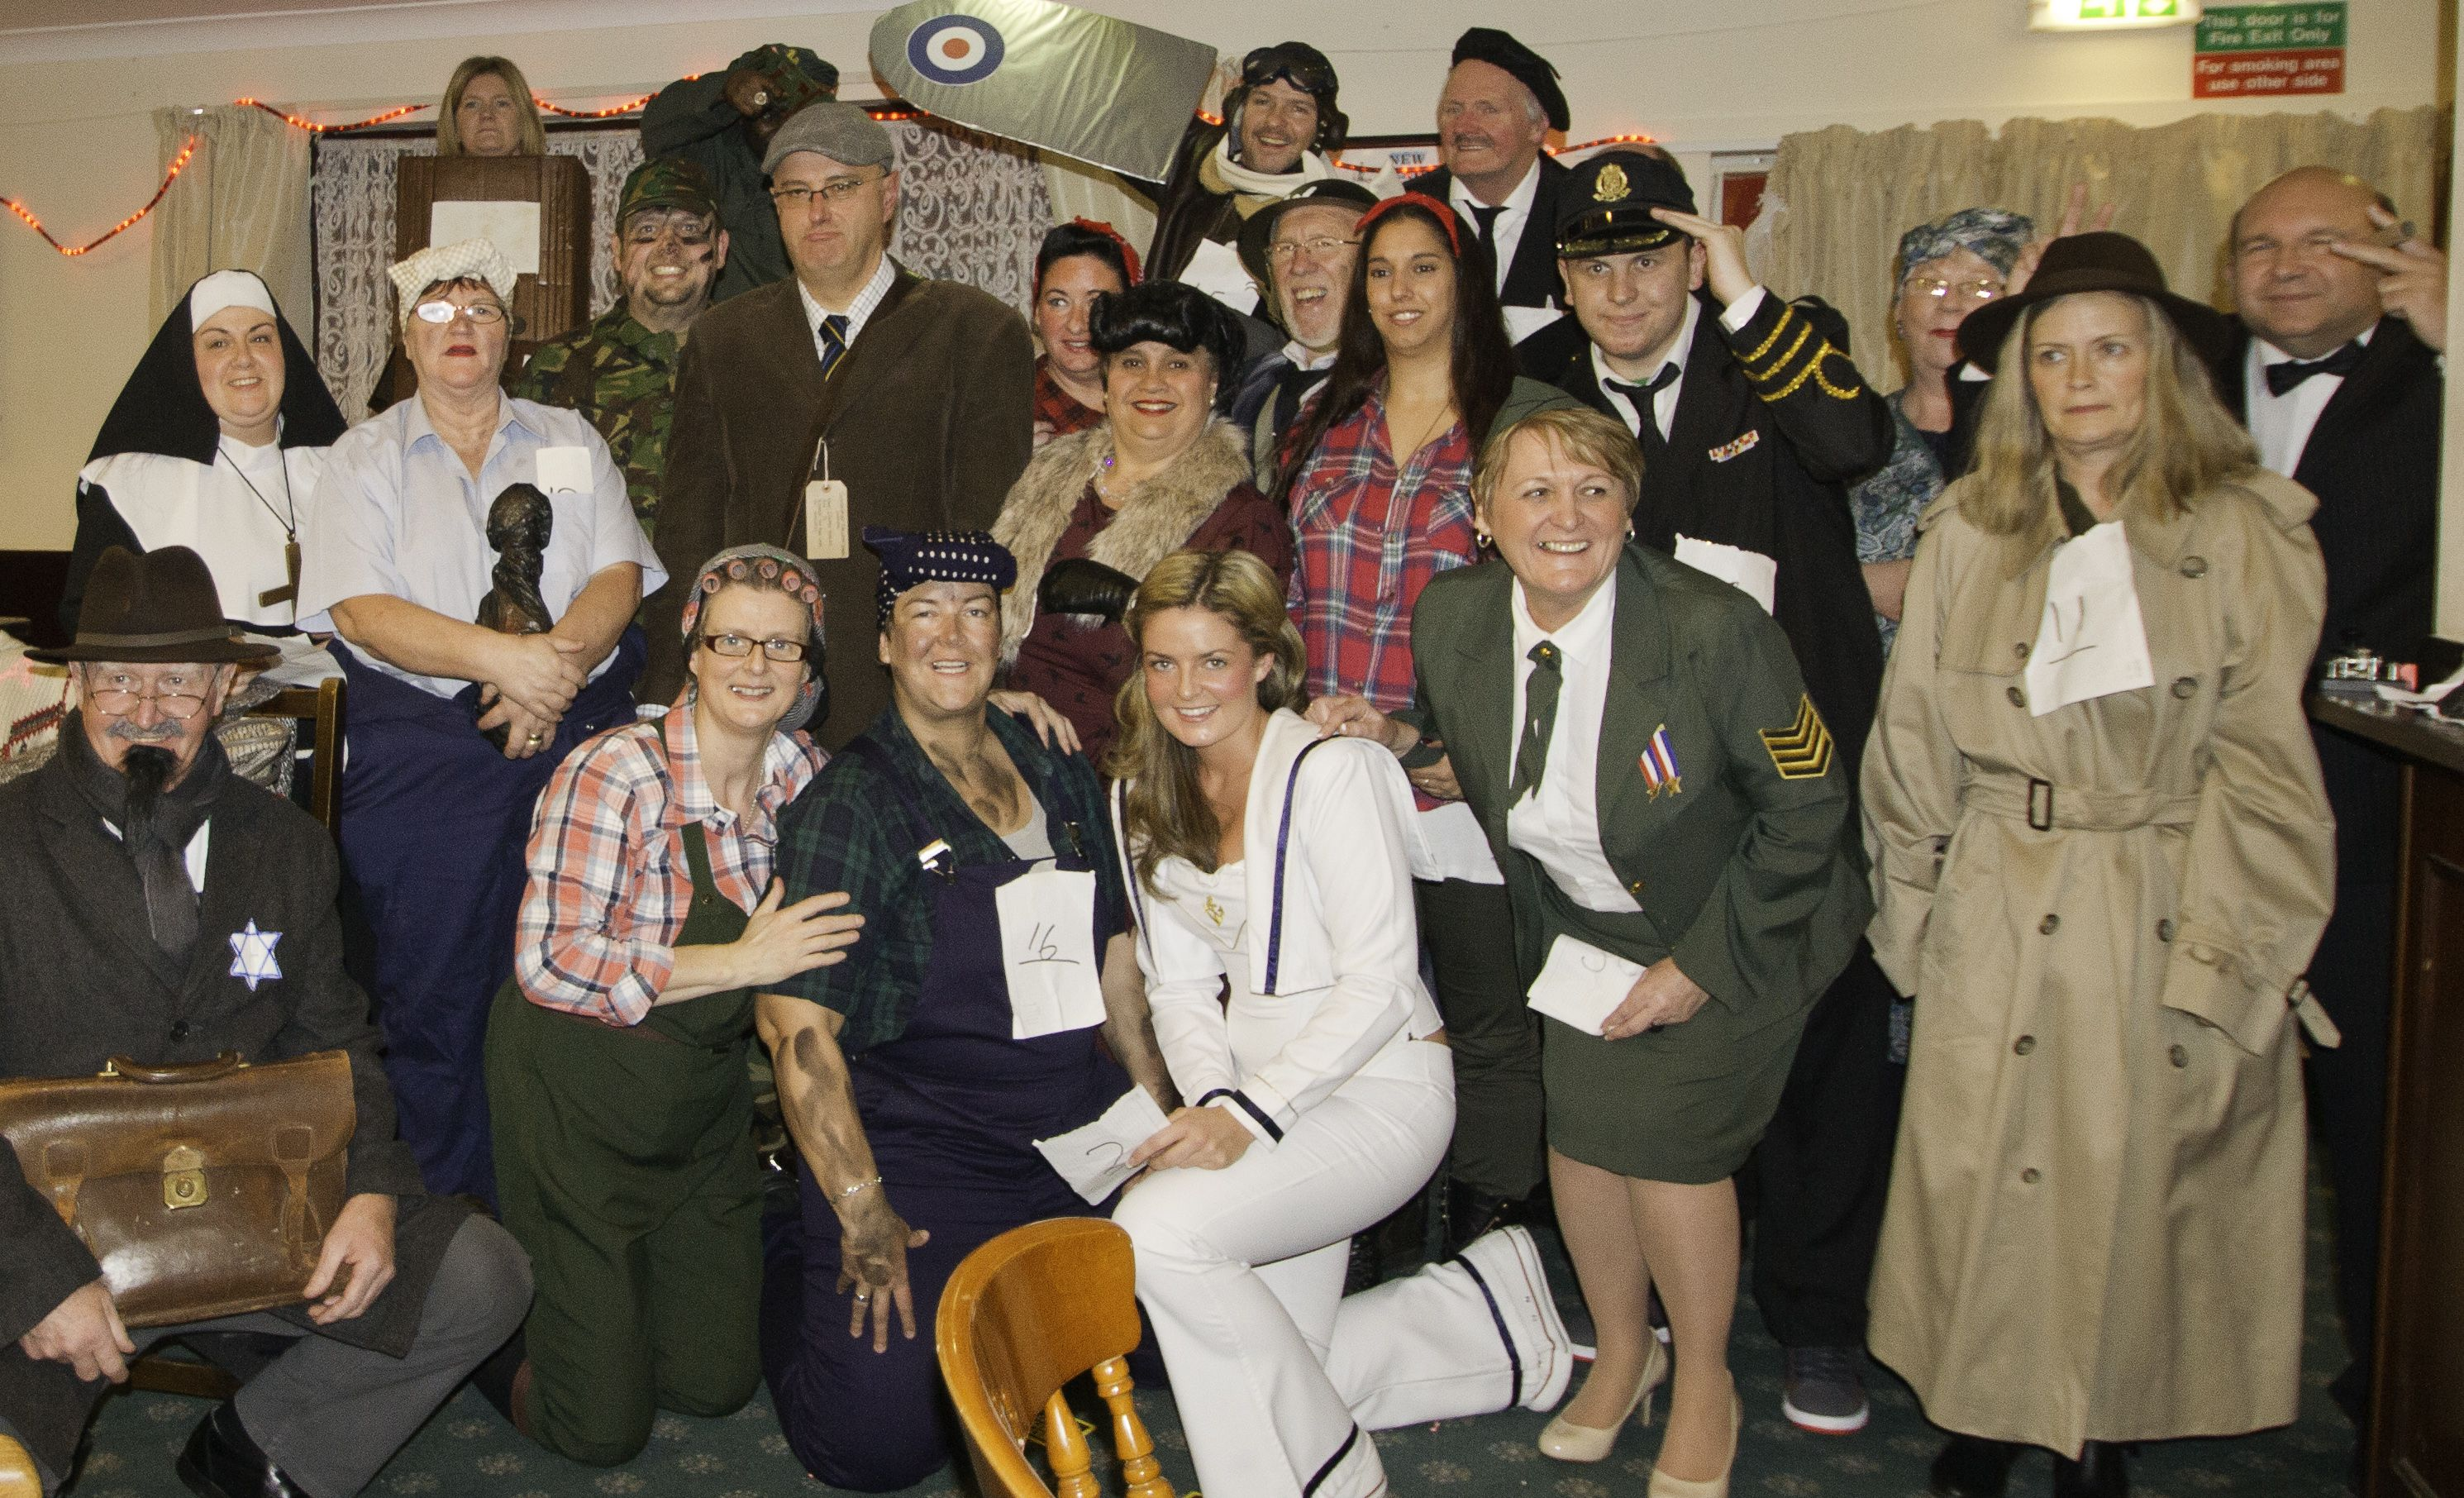 New Year Eve fancy dress as a World War 2 theme | Vintage ...